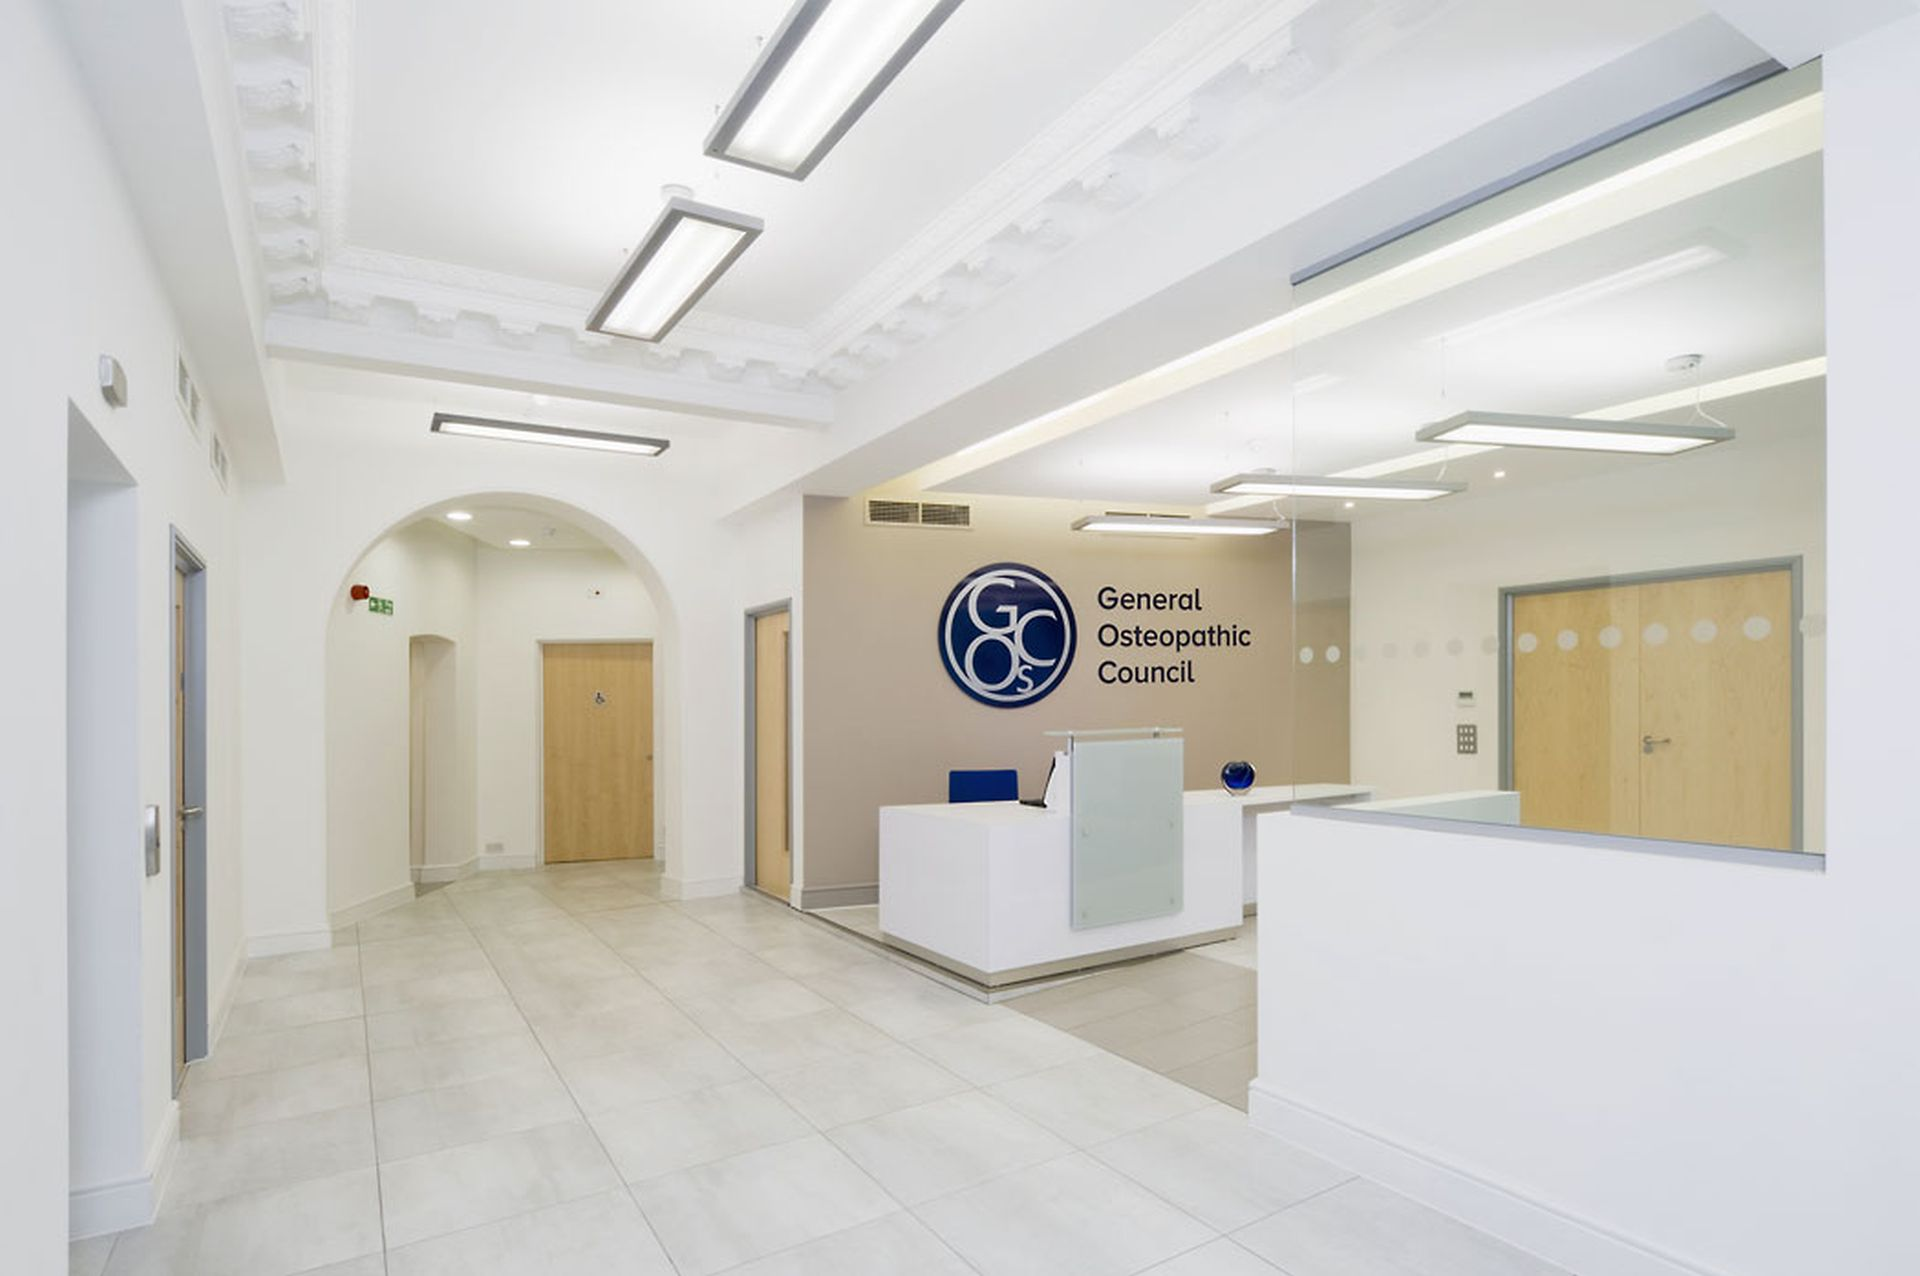 General Osteopathic Council Case Study image